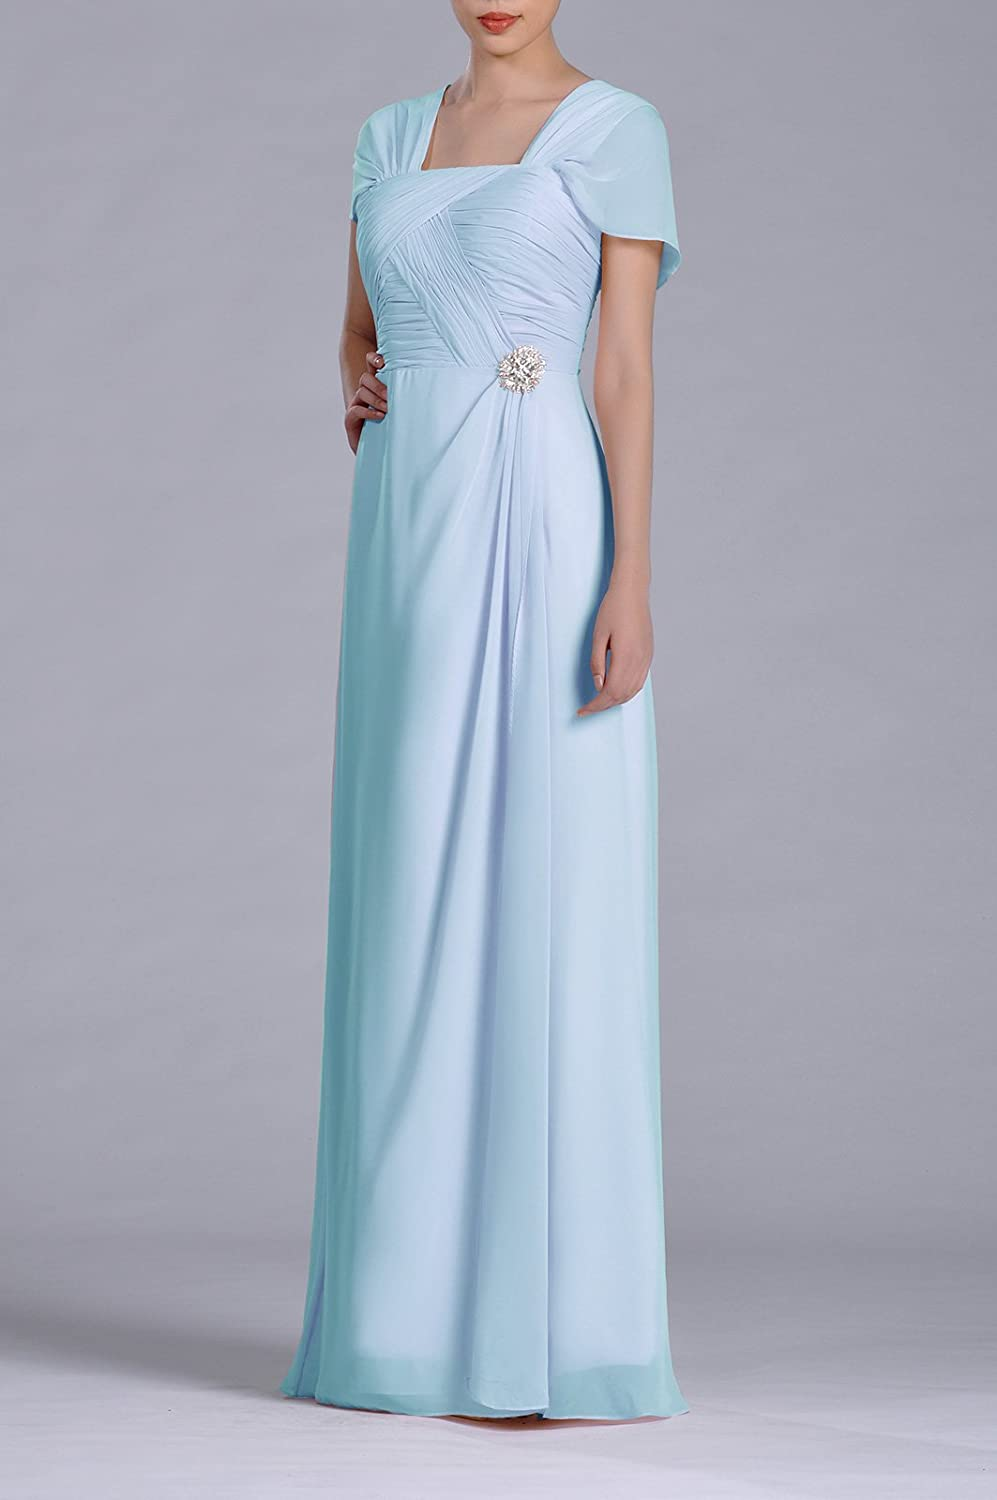 Amazon.com: Formal Pleated Chiffon Bateau Sleeveless Sheath Long ...